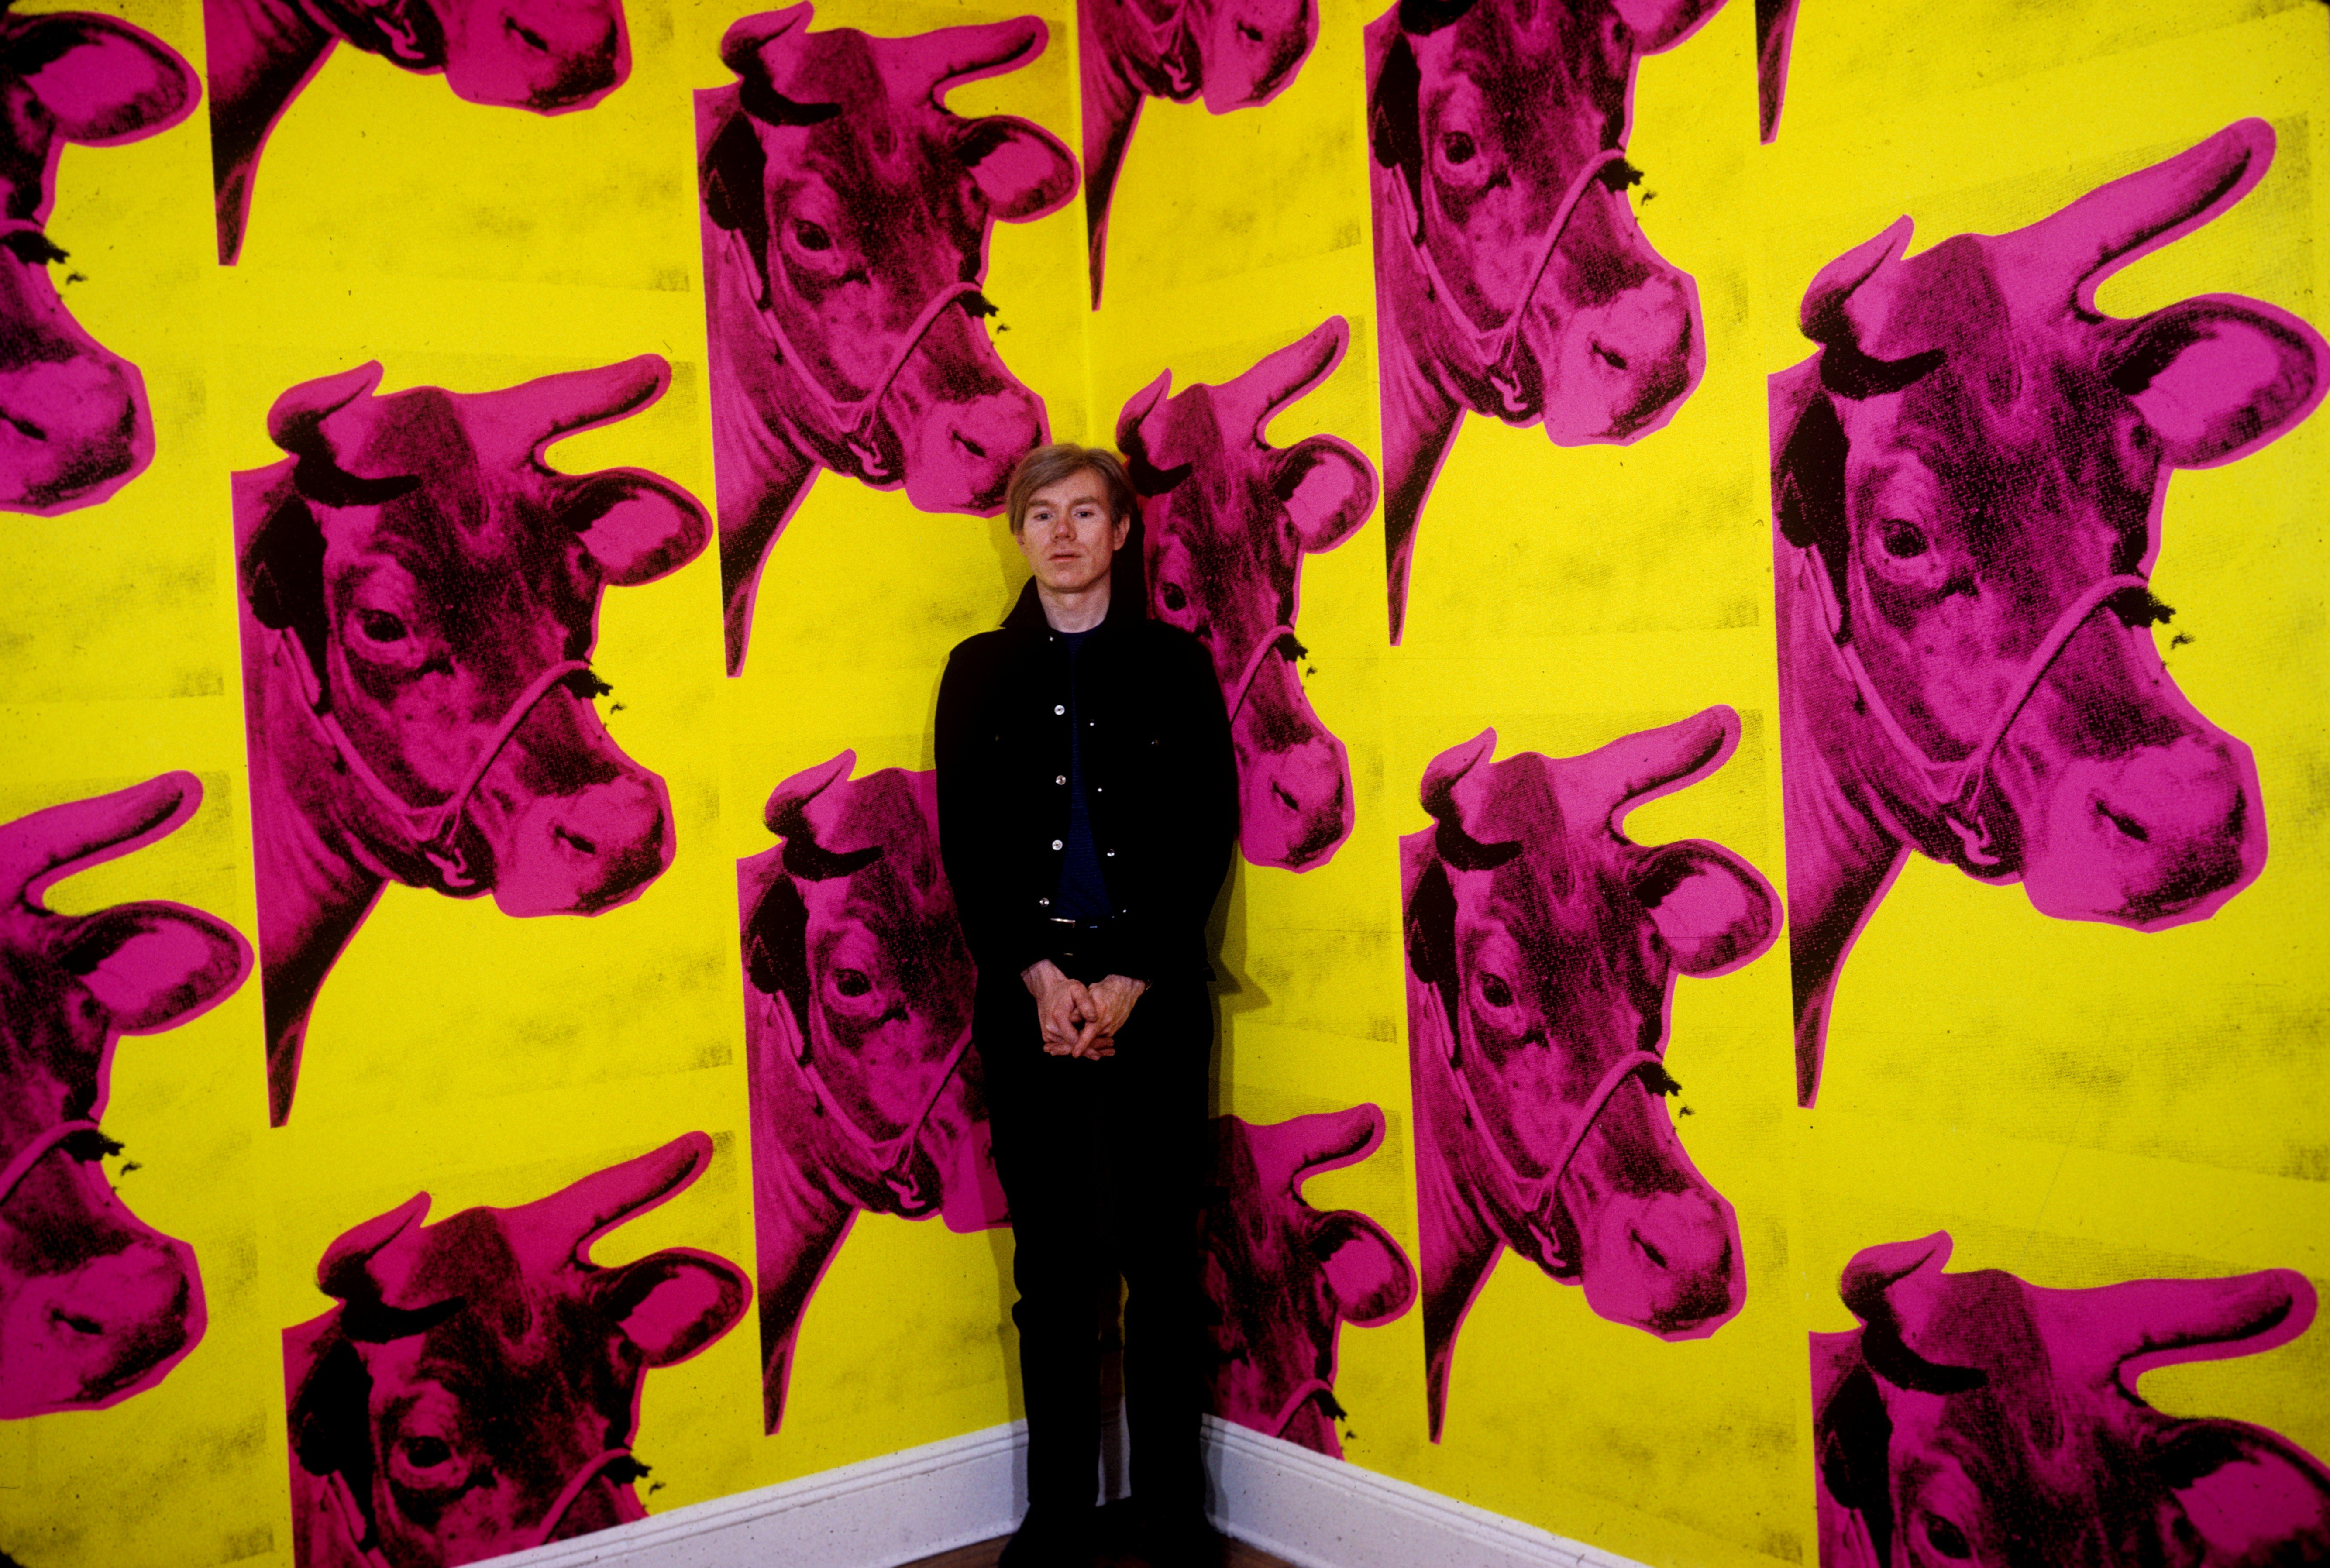 andy warhol cow wallpaper 1966 wallpapersafari. Black Bedroom Furniture Sets. Home Design Ideas